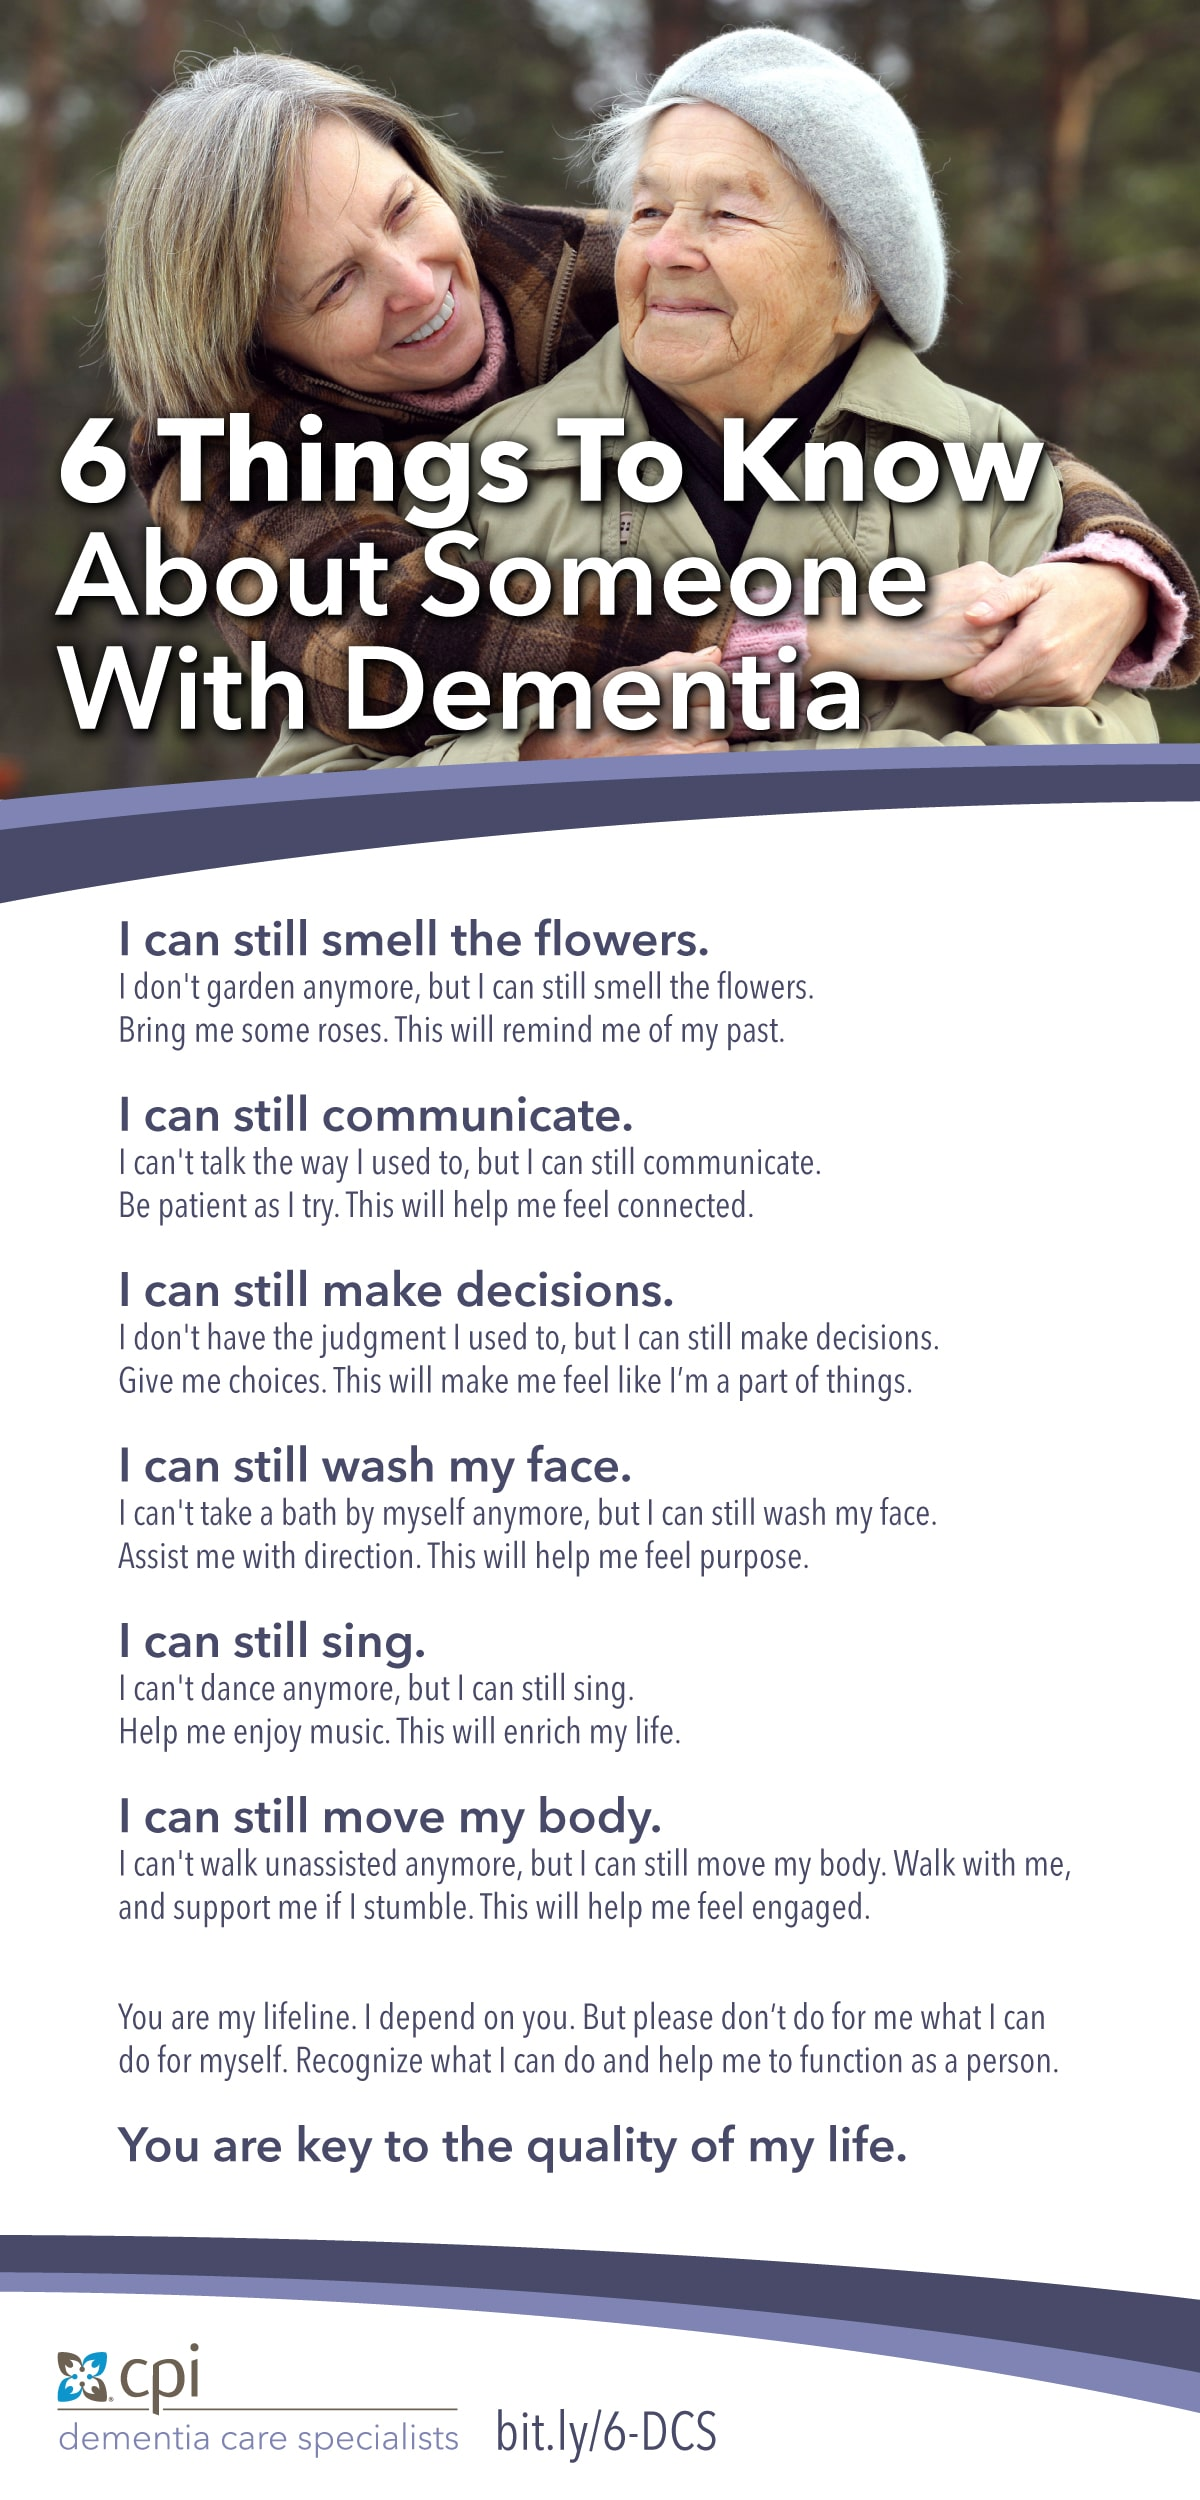 6 Facts About a Person Dementia